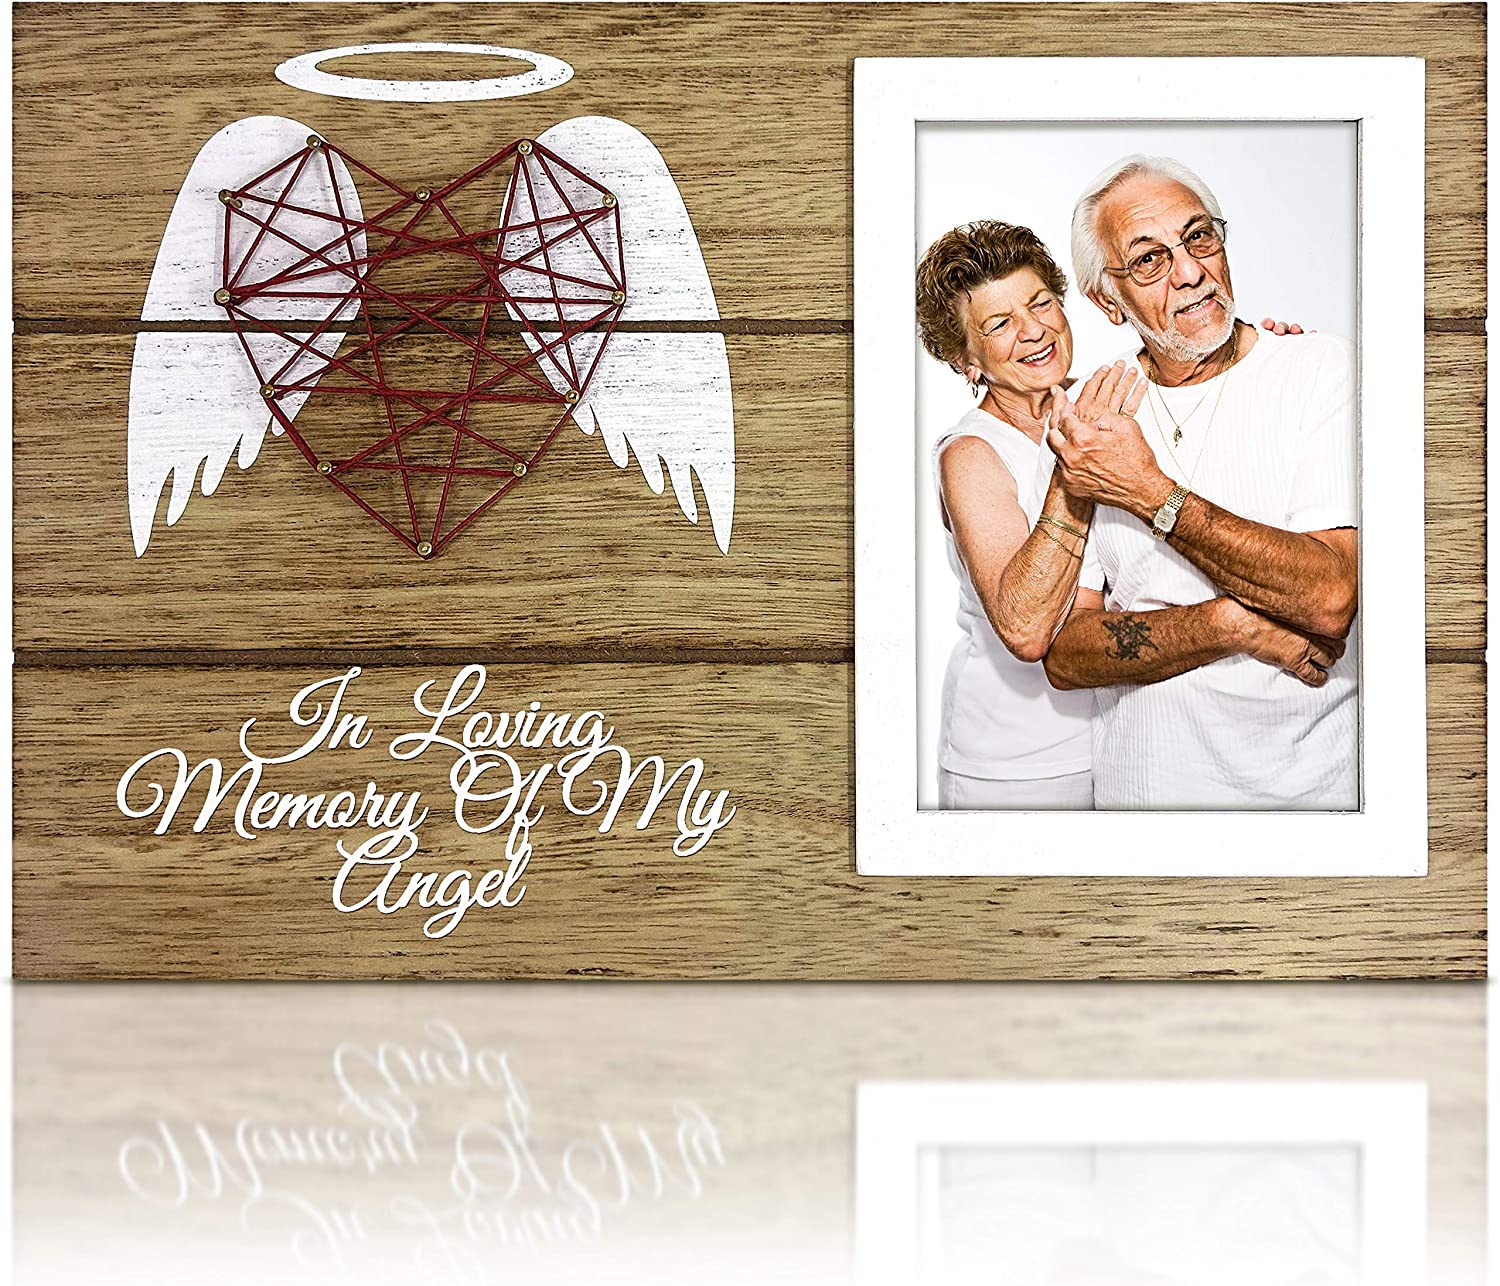 OakiWay Memorial Gifts - Wood Picture Frame Sympathy Gift, 4x6 Photo Frame In Memory of Loved One, with Hand-Woven Heart Shape Guardian Angel - Bereavement Gifts - Remembrance Gifts - Condolence Gifts